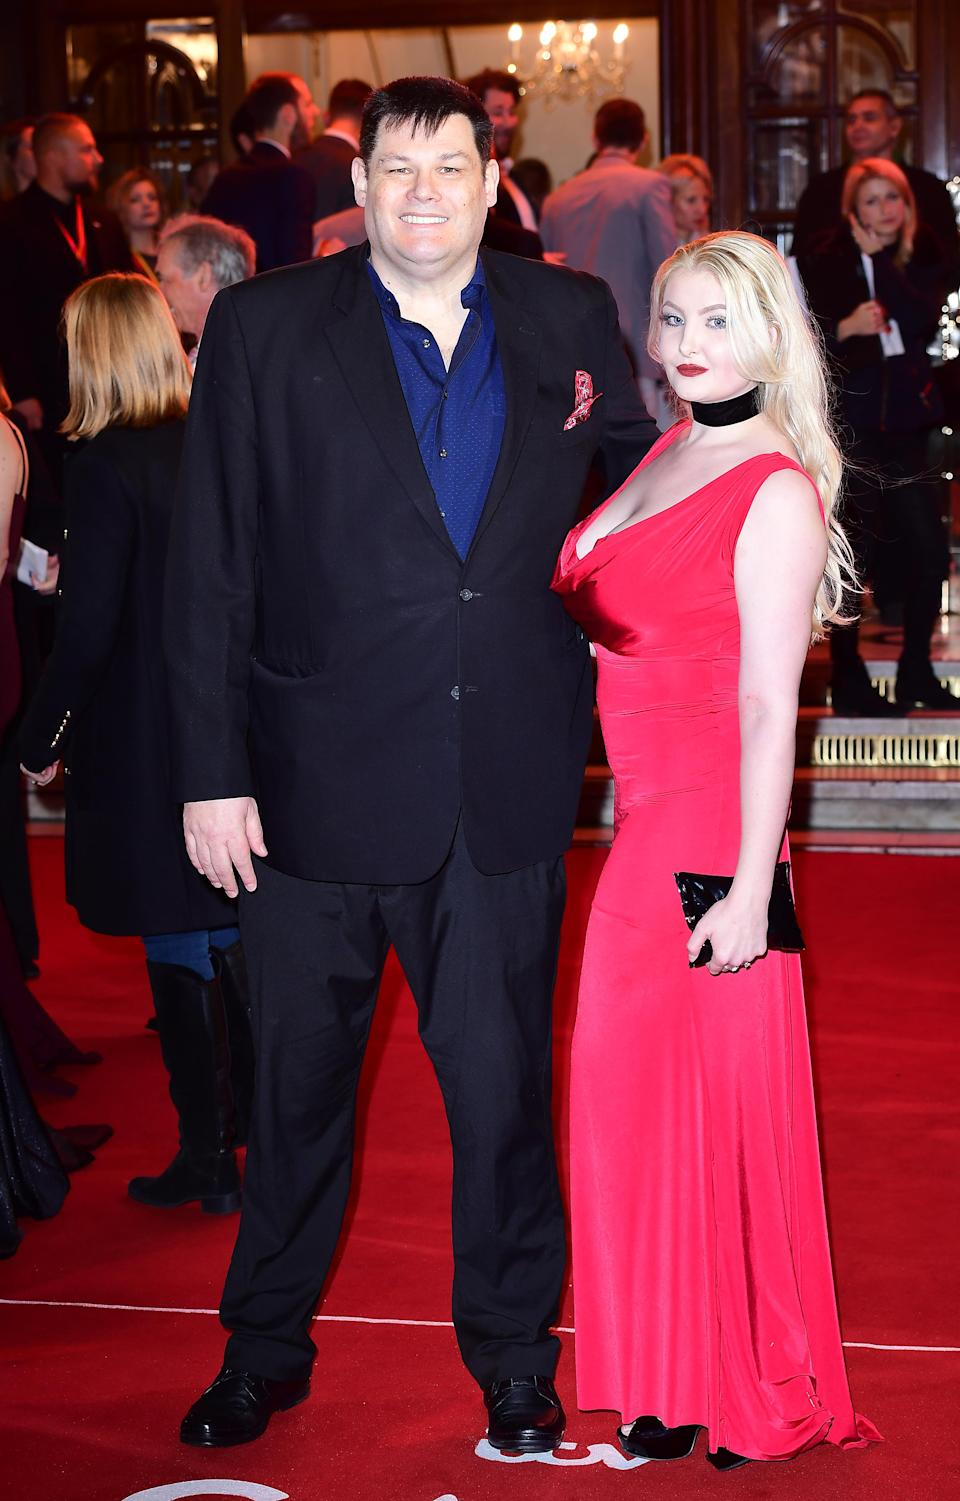 The Chase star Mark Labbett's wife – who is also his second cousin – has reportedly found love with another man. Photo: Getty Images